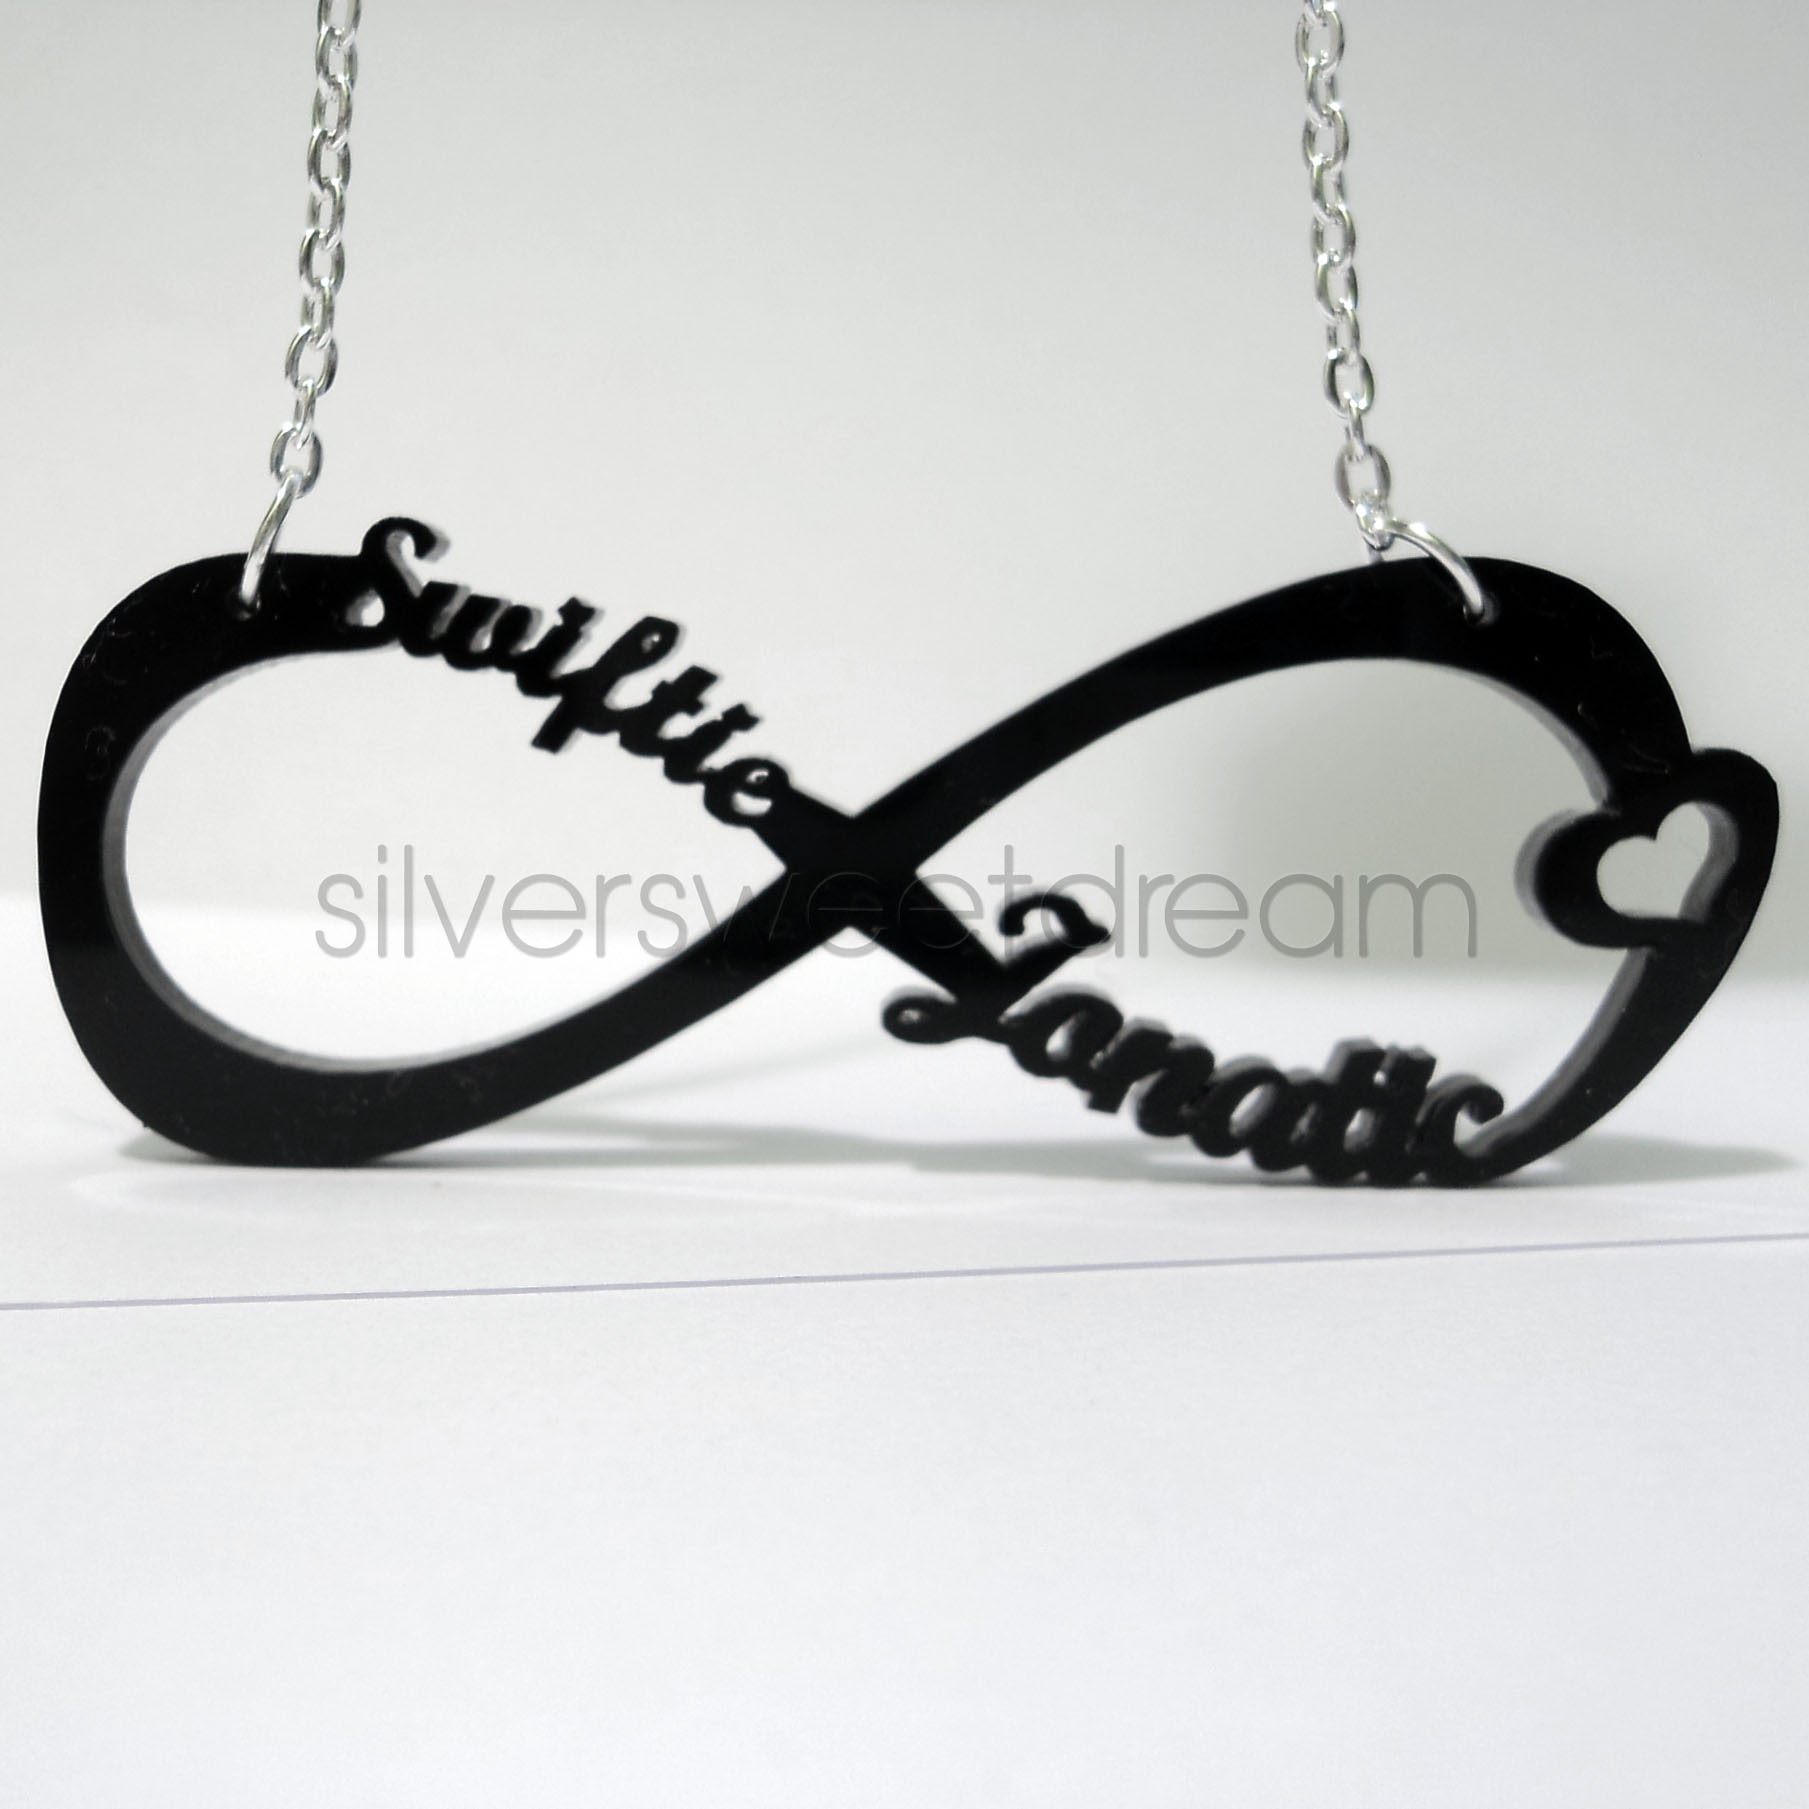 chain infinity image buy product rope chains popup sign gold necklace sterling silver